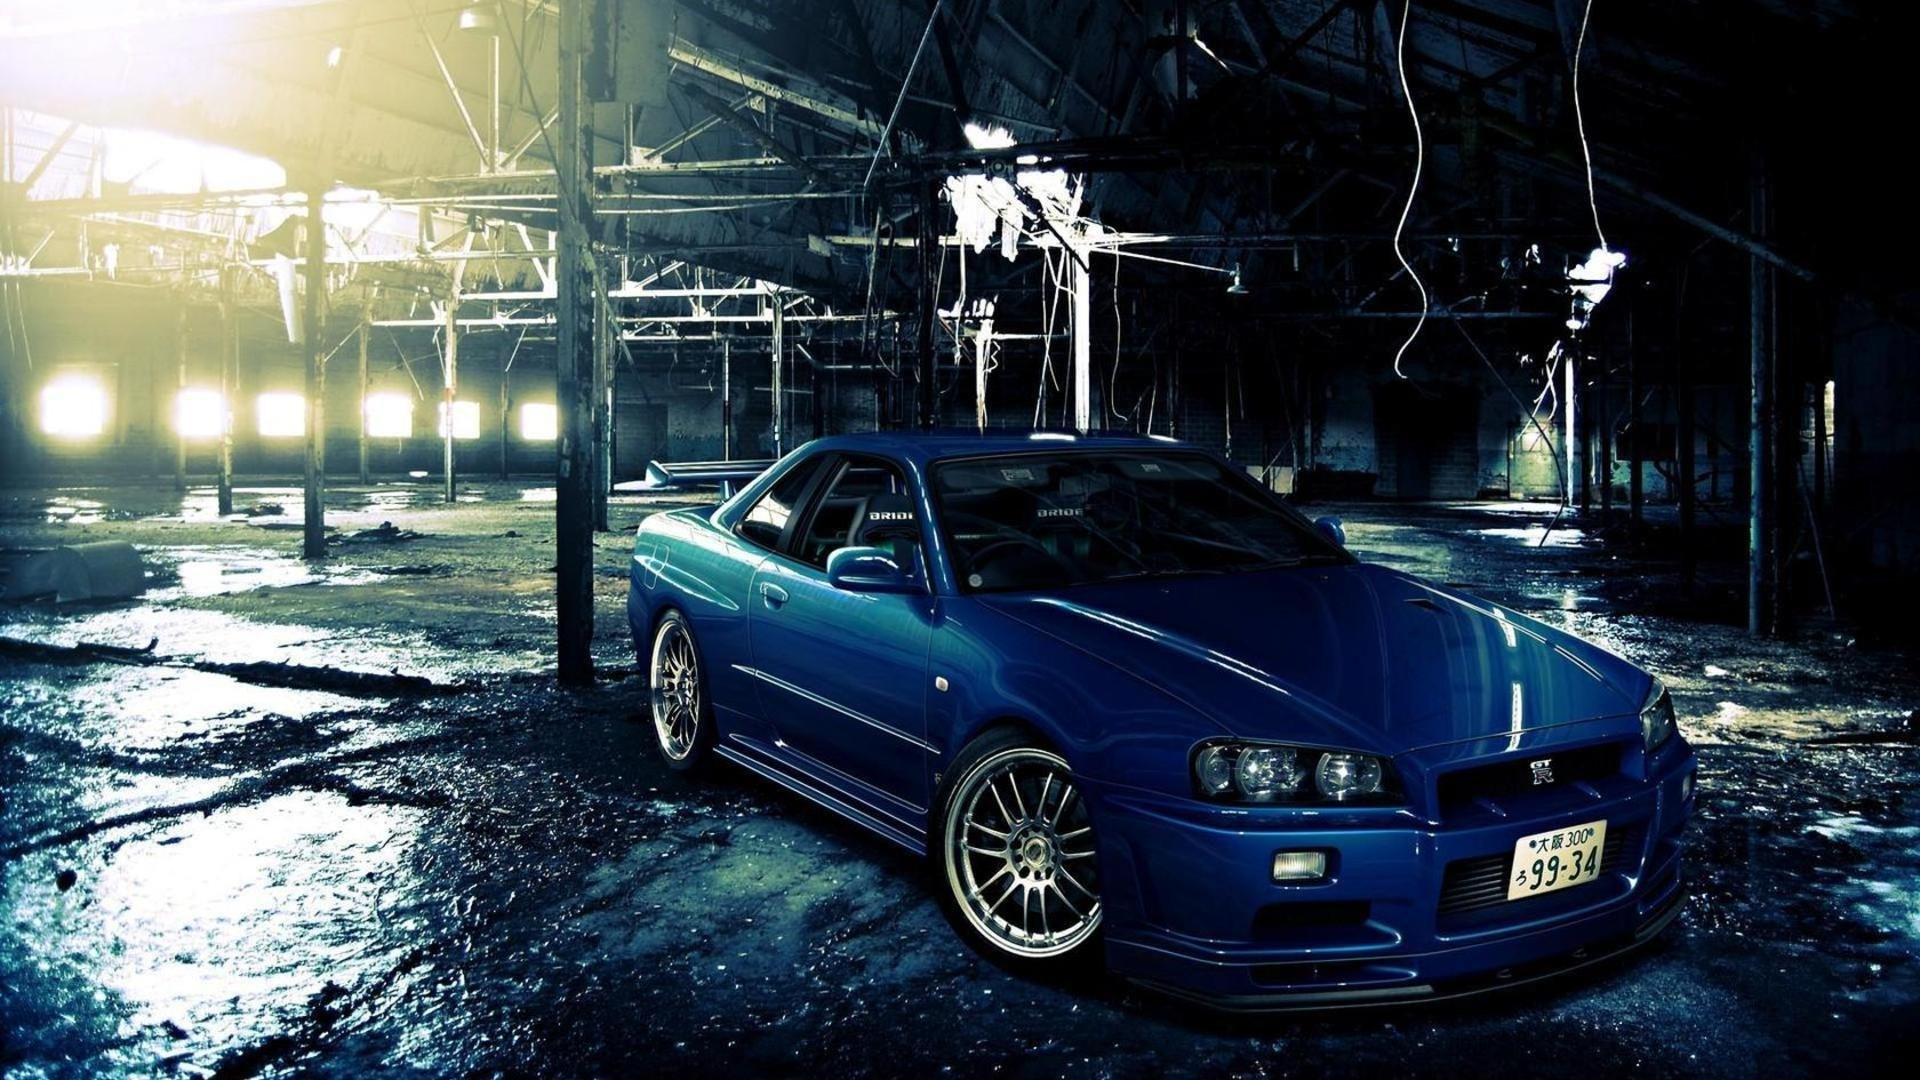 Nissan skyline hd wallpaper background image 1920x1080 id 447751 wallpaper abyss - Nissan skyline background ...